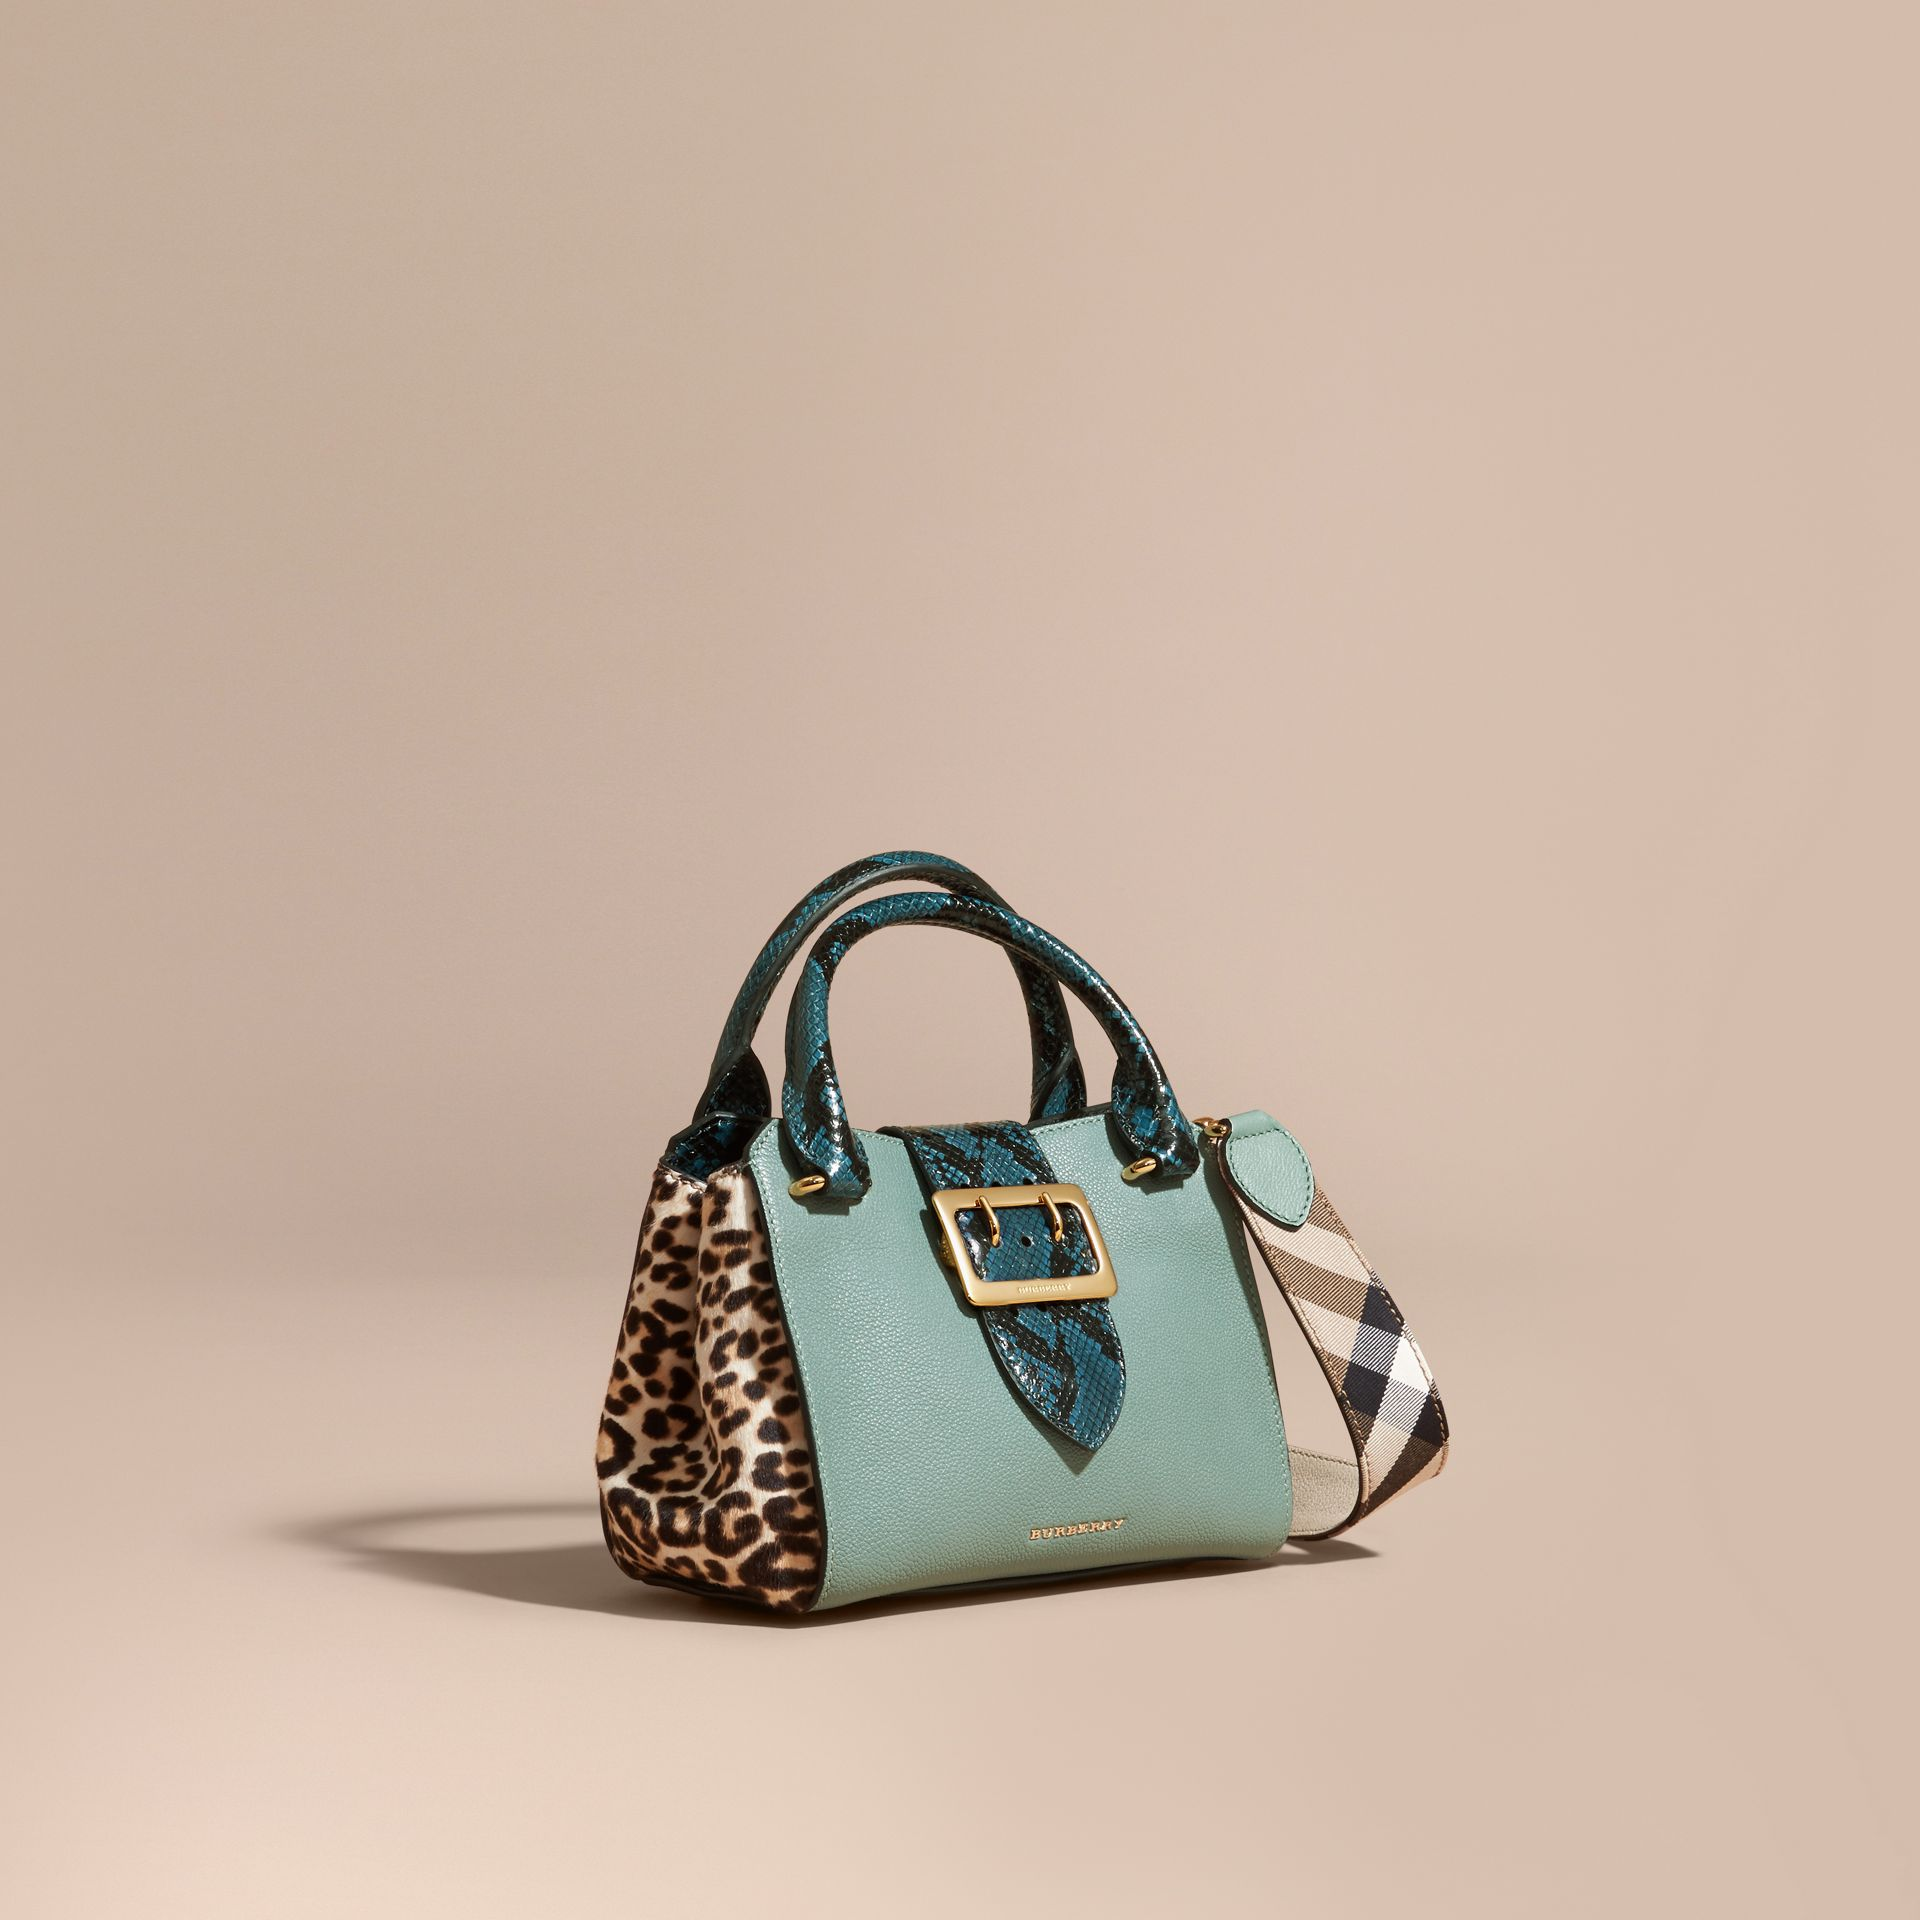 The Small Buckle Tote in Leather and  Leopard-print Calfskin in Eucalyptus Green - gallery image 1